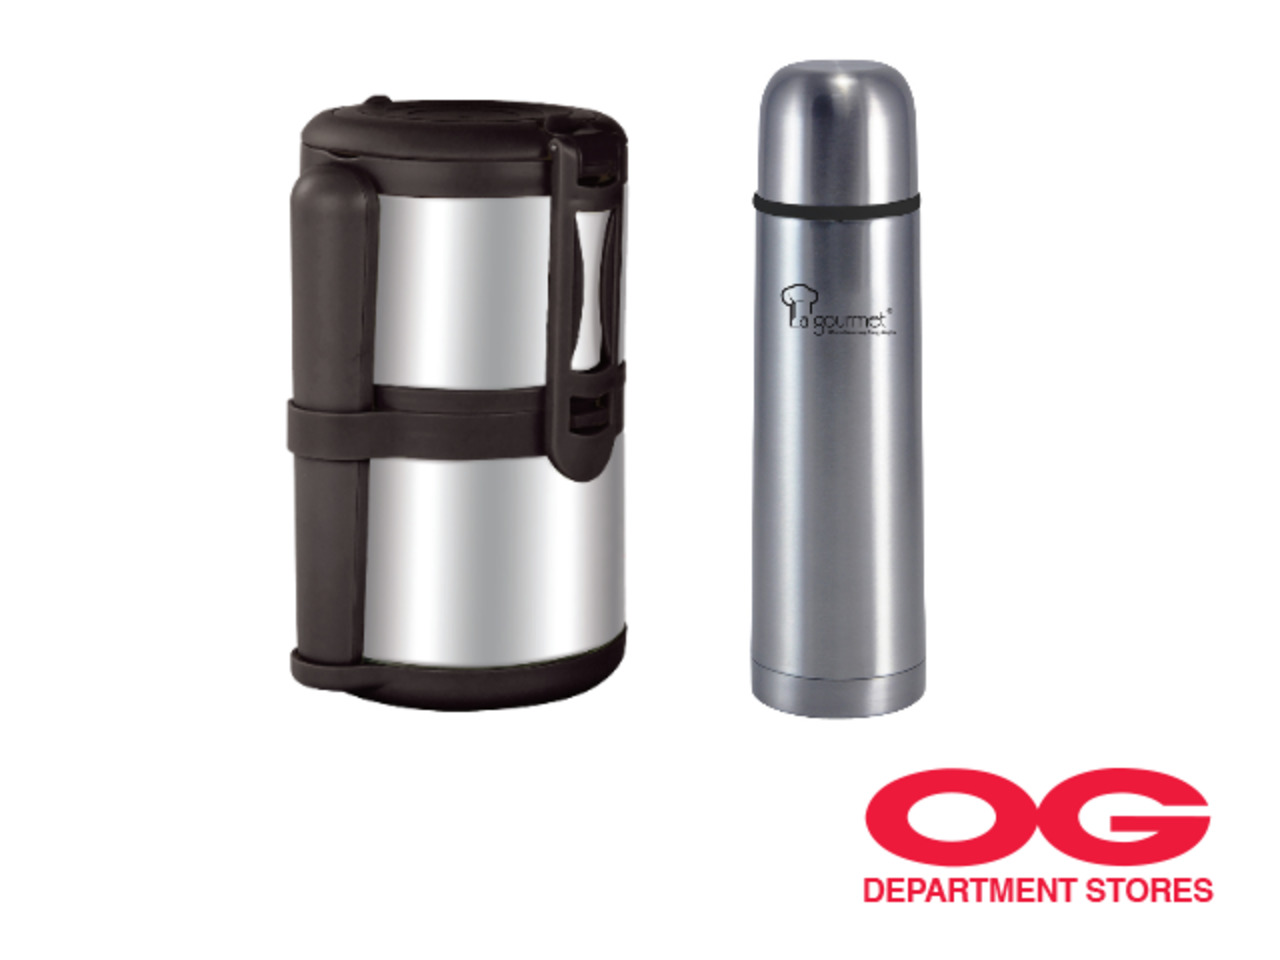 LA GOURMET Sassy 1.4L 2-Tier Thermal Carrier + Sakura Plus 0.5L Flask @ $58